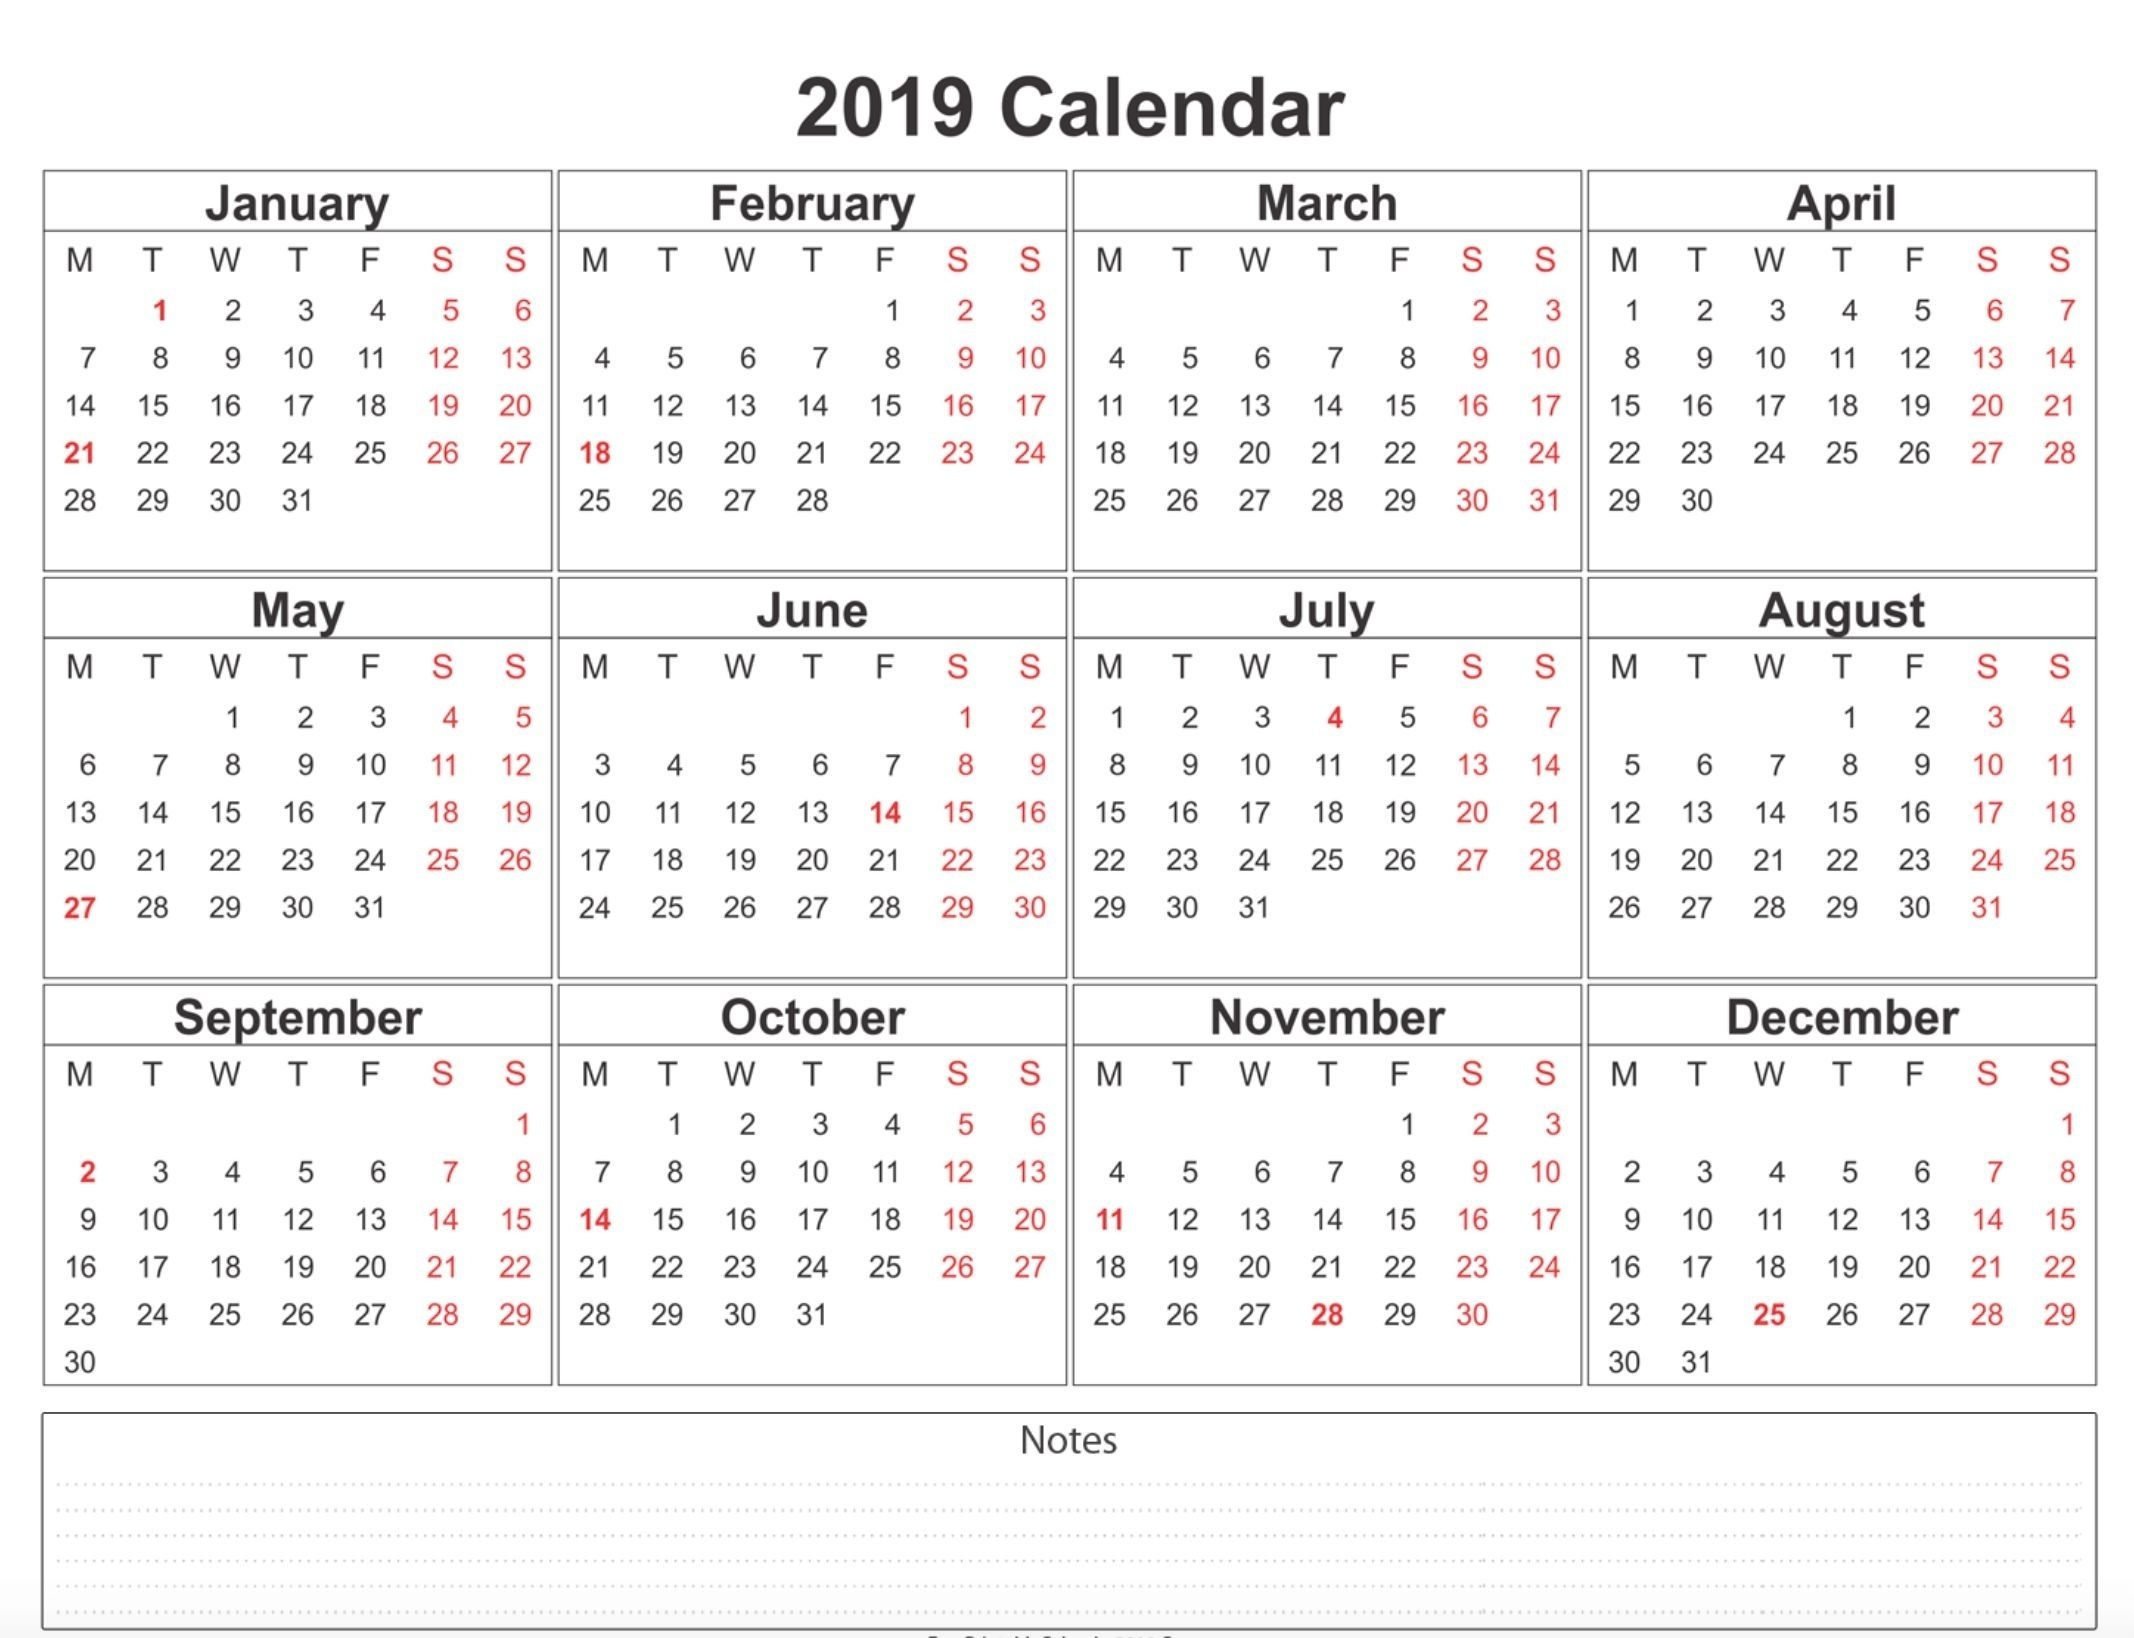 2019 Weekly Calendar Printable | Calendar 2019 Template, 12 South African Calendar 2020 Pdf